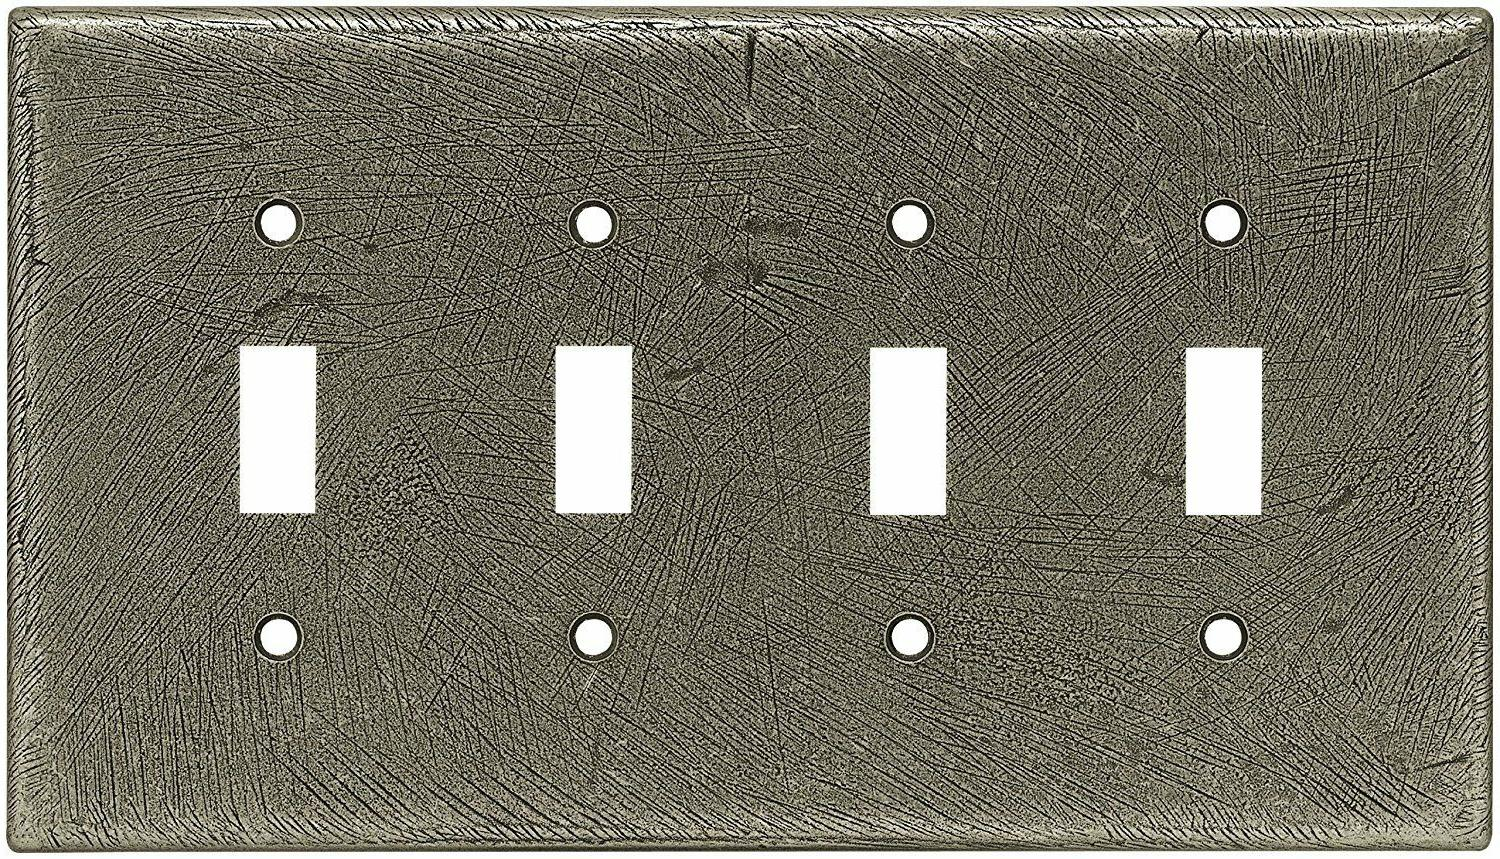 Quad Toggle Switch Wall Plate Distressed Rustic Silver Brain